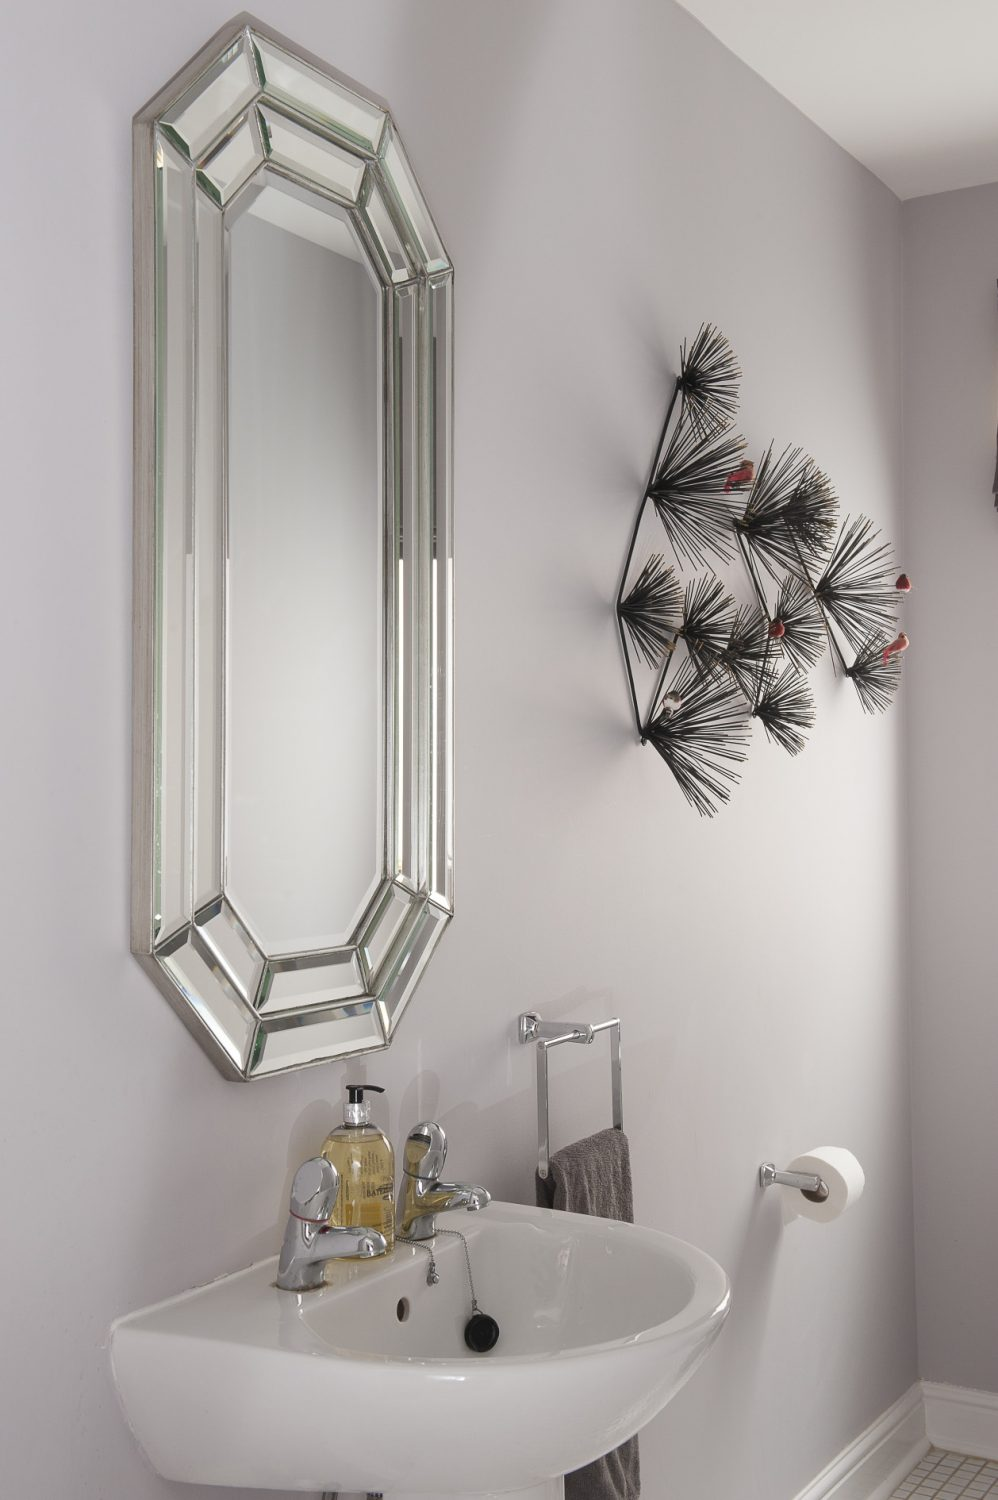 The downstairs loo features a wall scuplture that Phoebe found at HomeSense